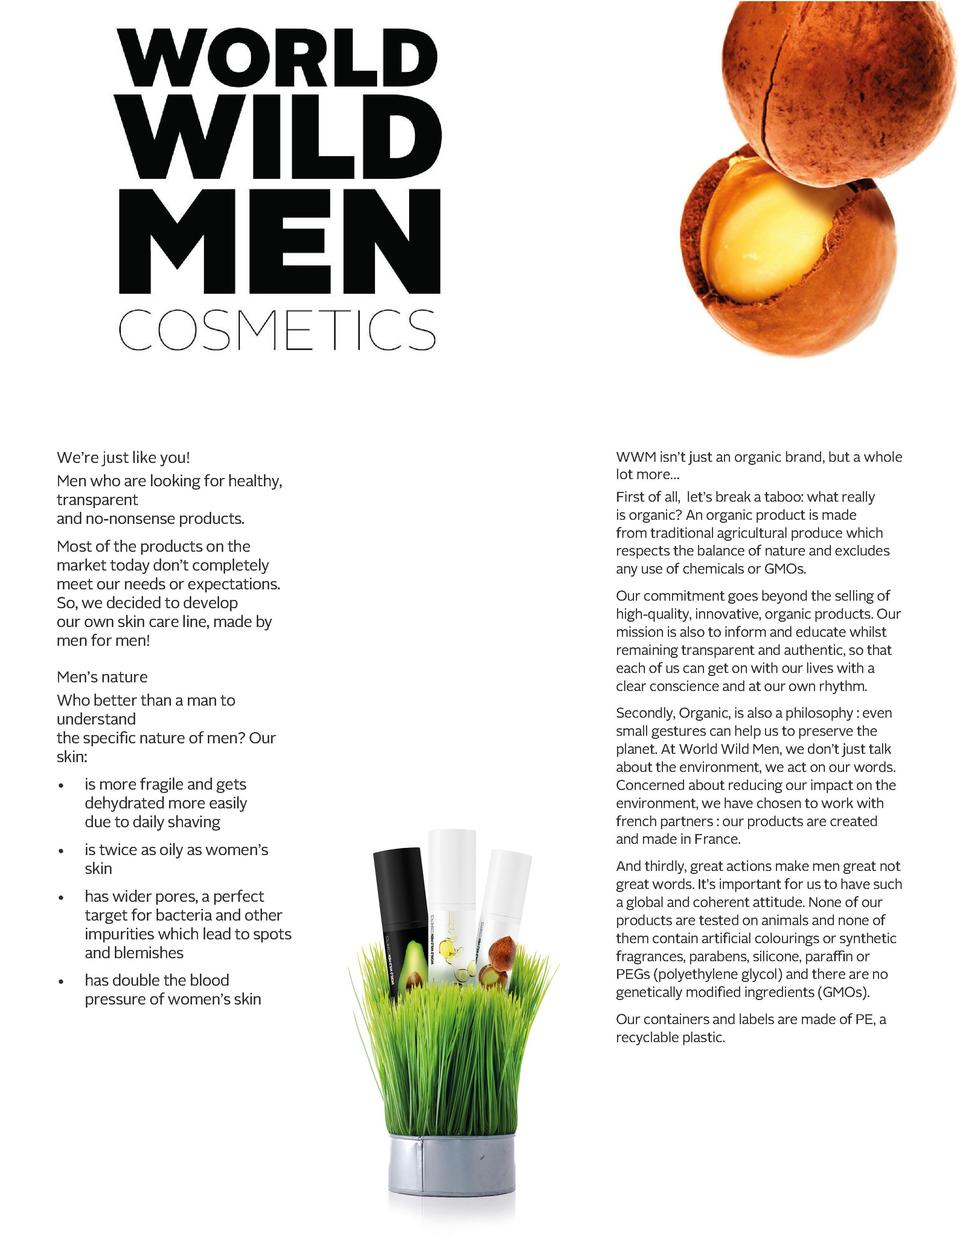 We   re just like you  Men who are looking for healthy, transparent and no-nonsense products. Most of the products on the ...